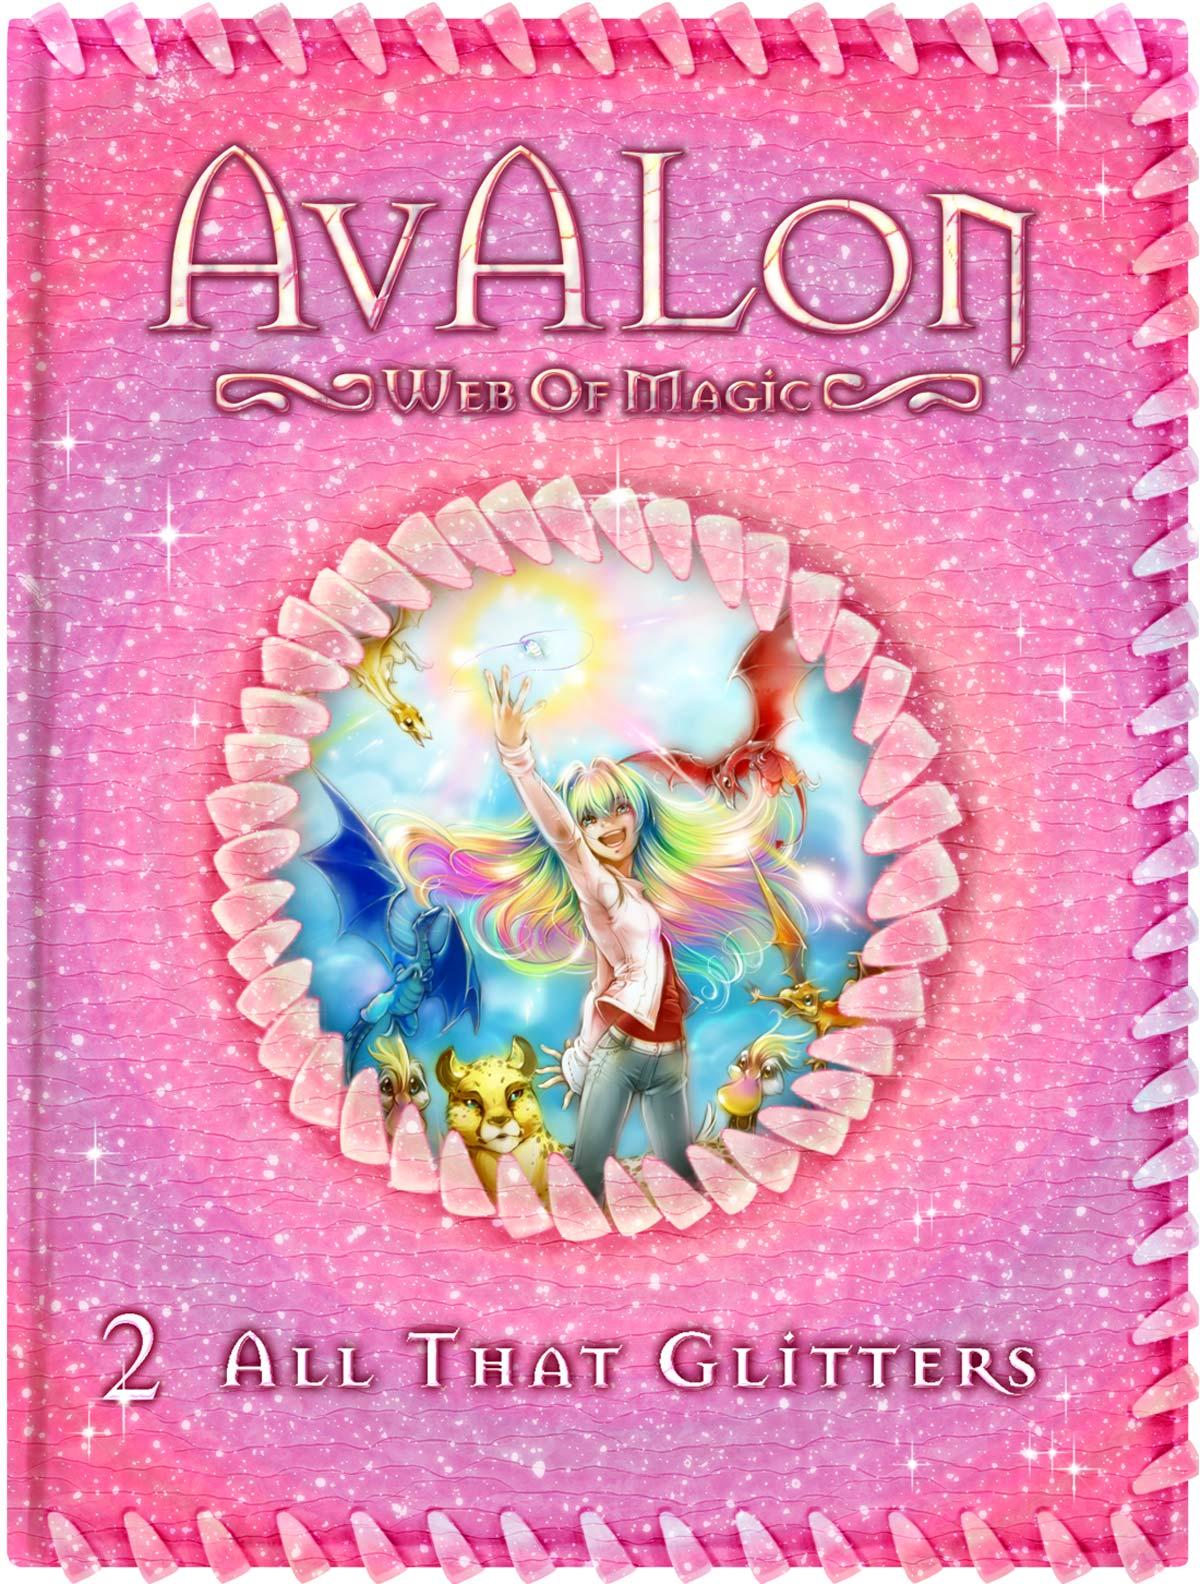 All That Glitters (Avalon: Web of Magic #2)